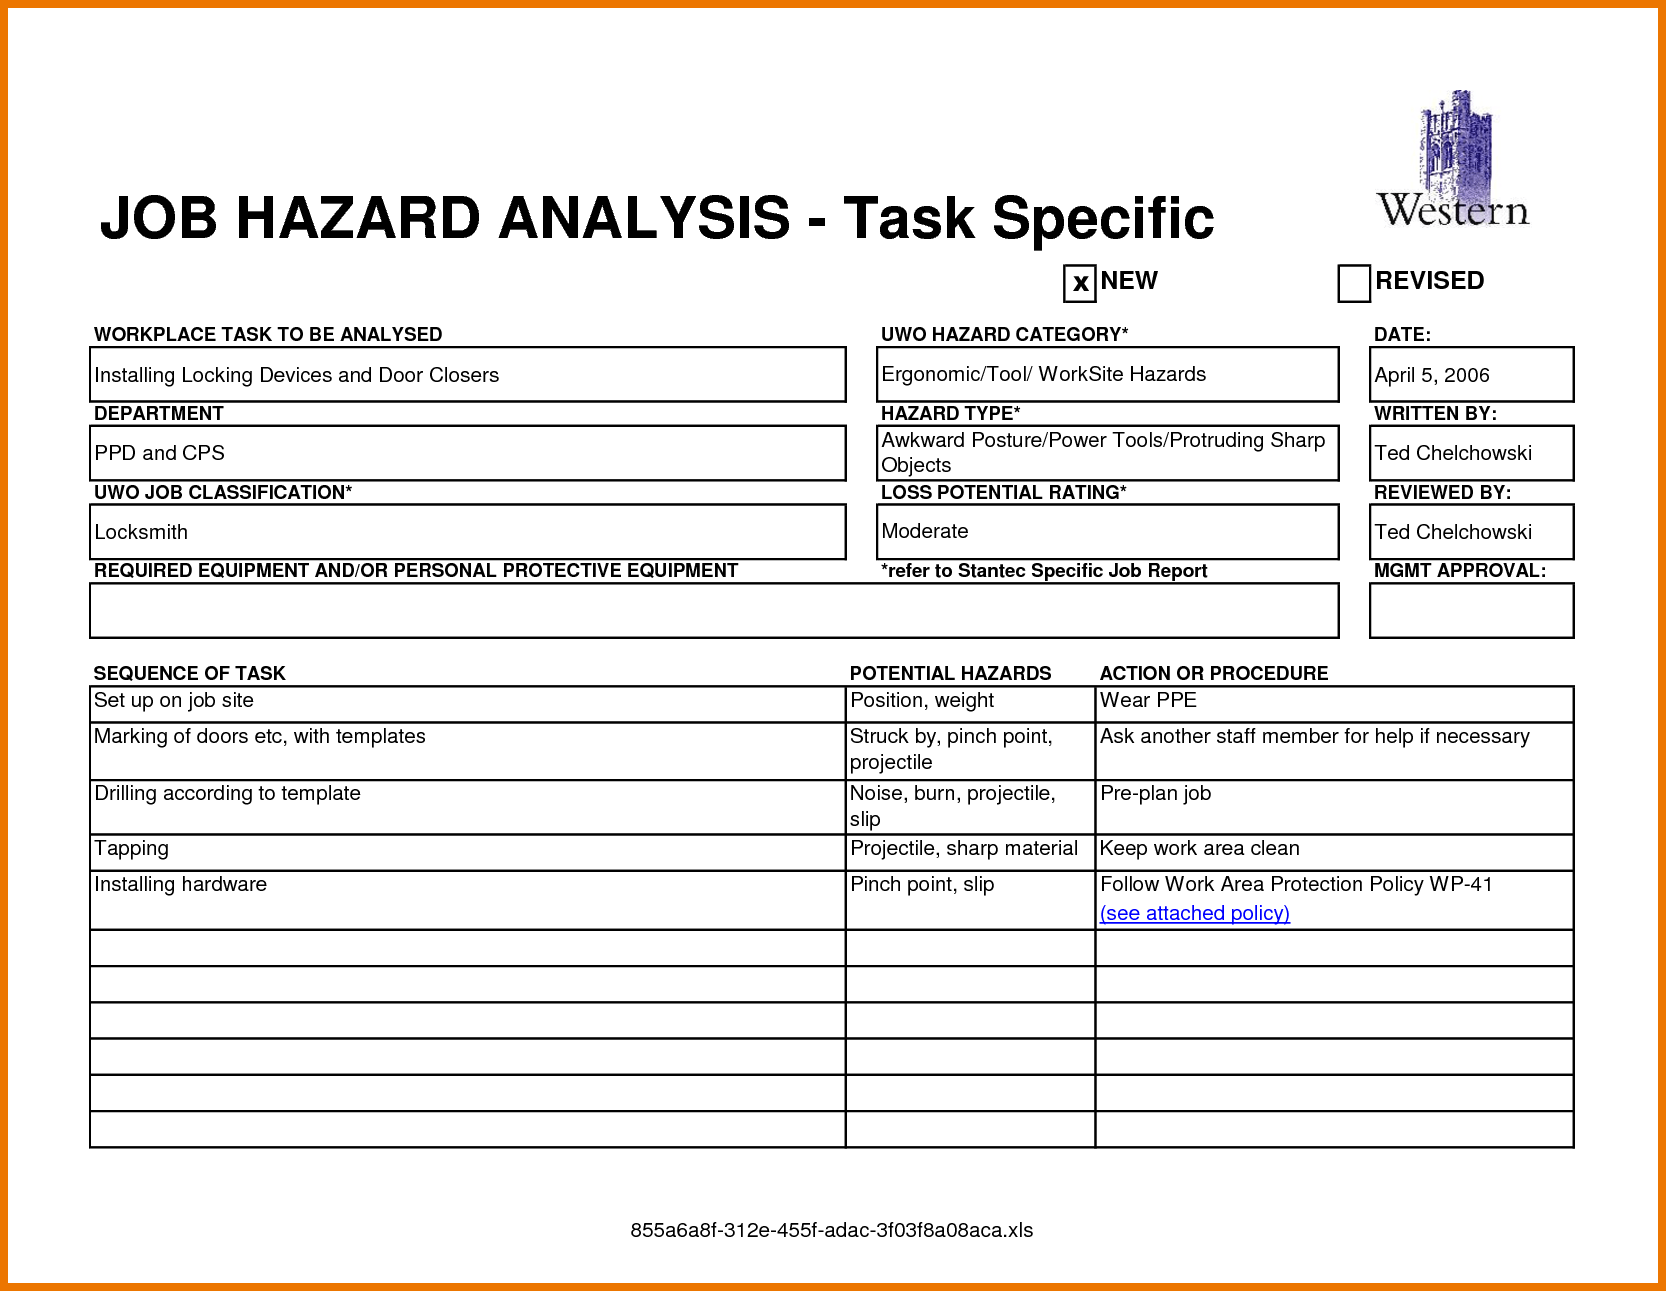 Task Specific Job Hazardysis